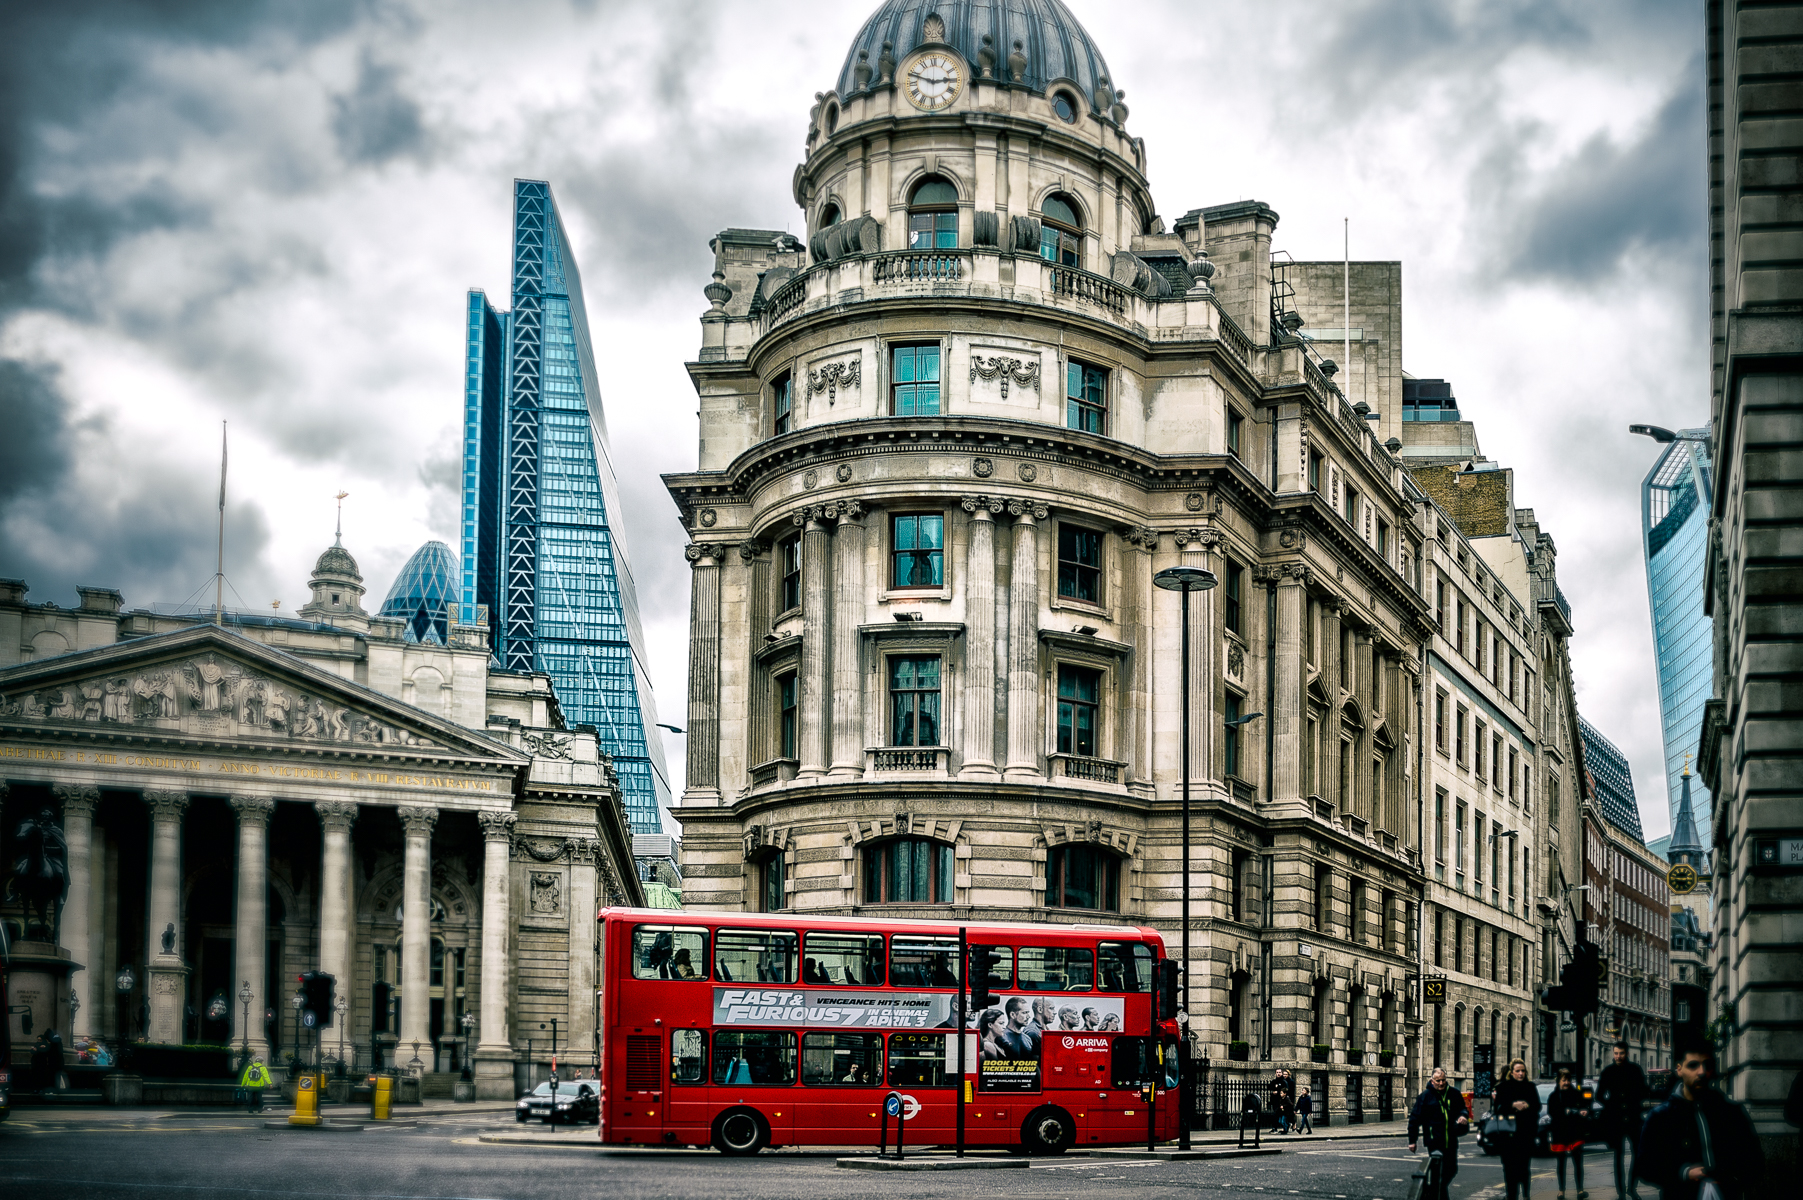 Architecture of London 16 by calimer00